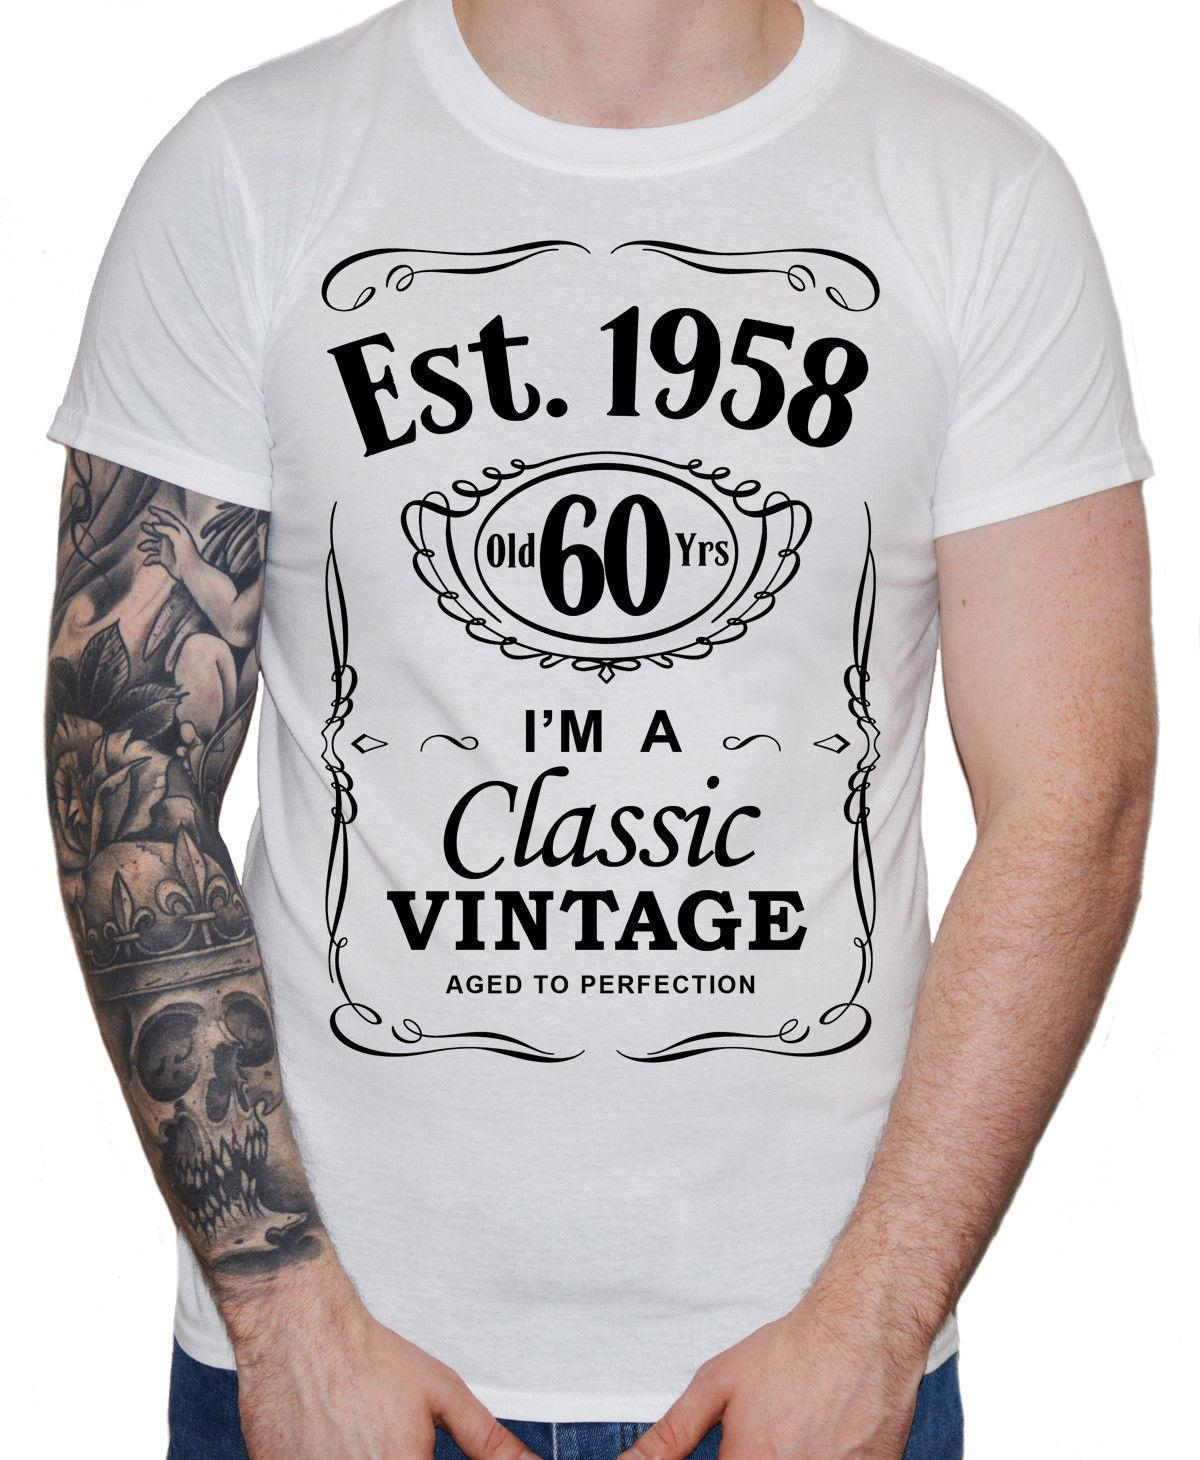 2018 new cool tee shirt men s 60th birthday t shirt est 1958 vintage